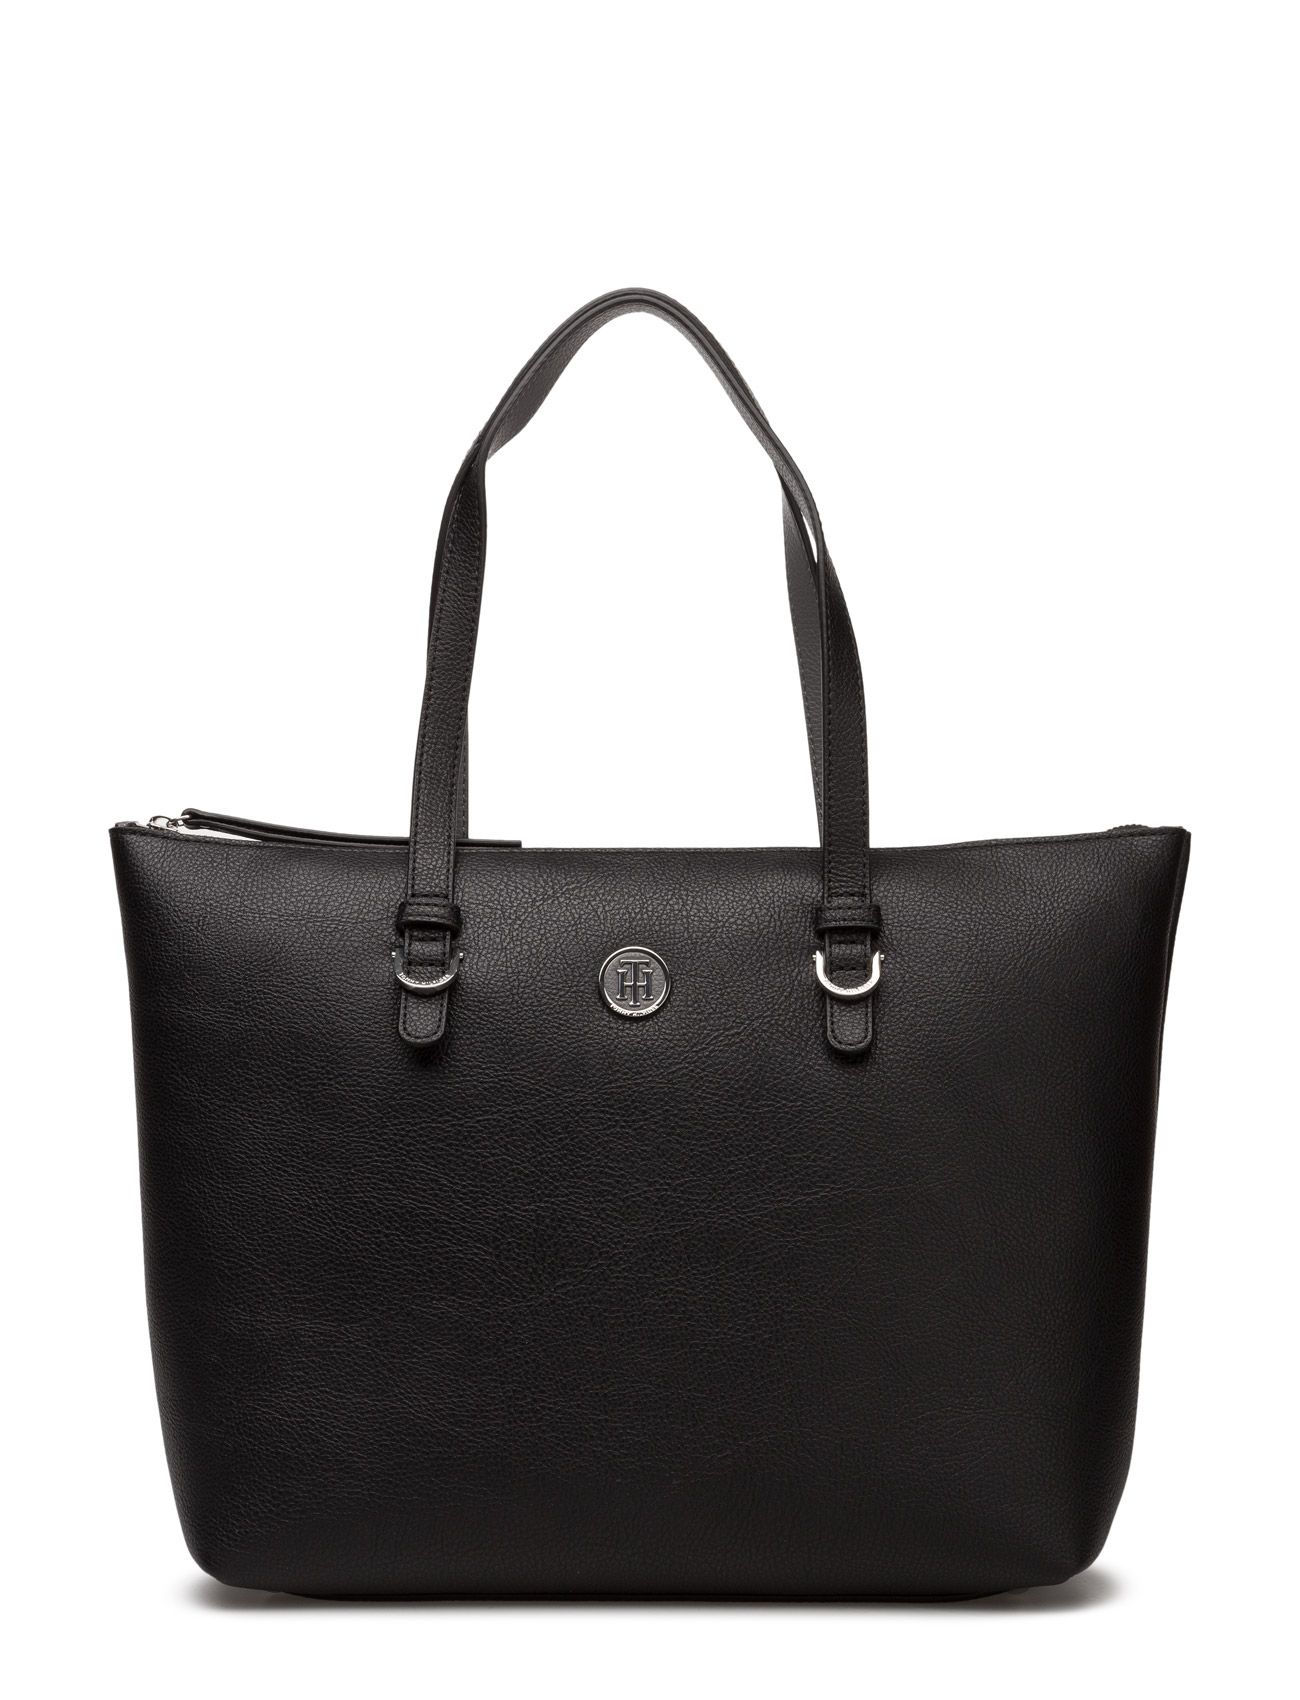 Tommy Hilfiger TH CORE TOTE